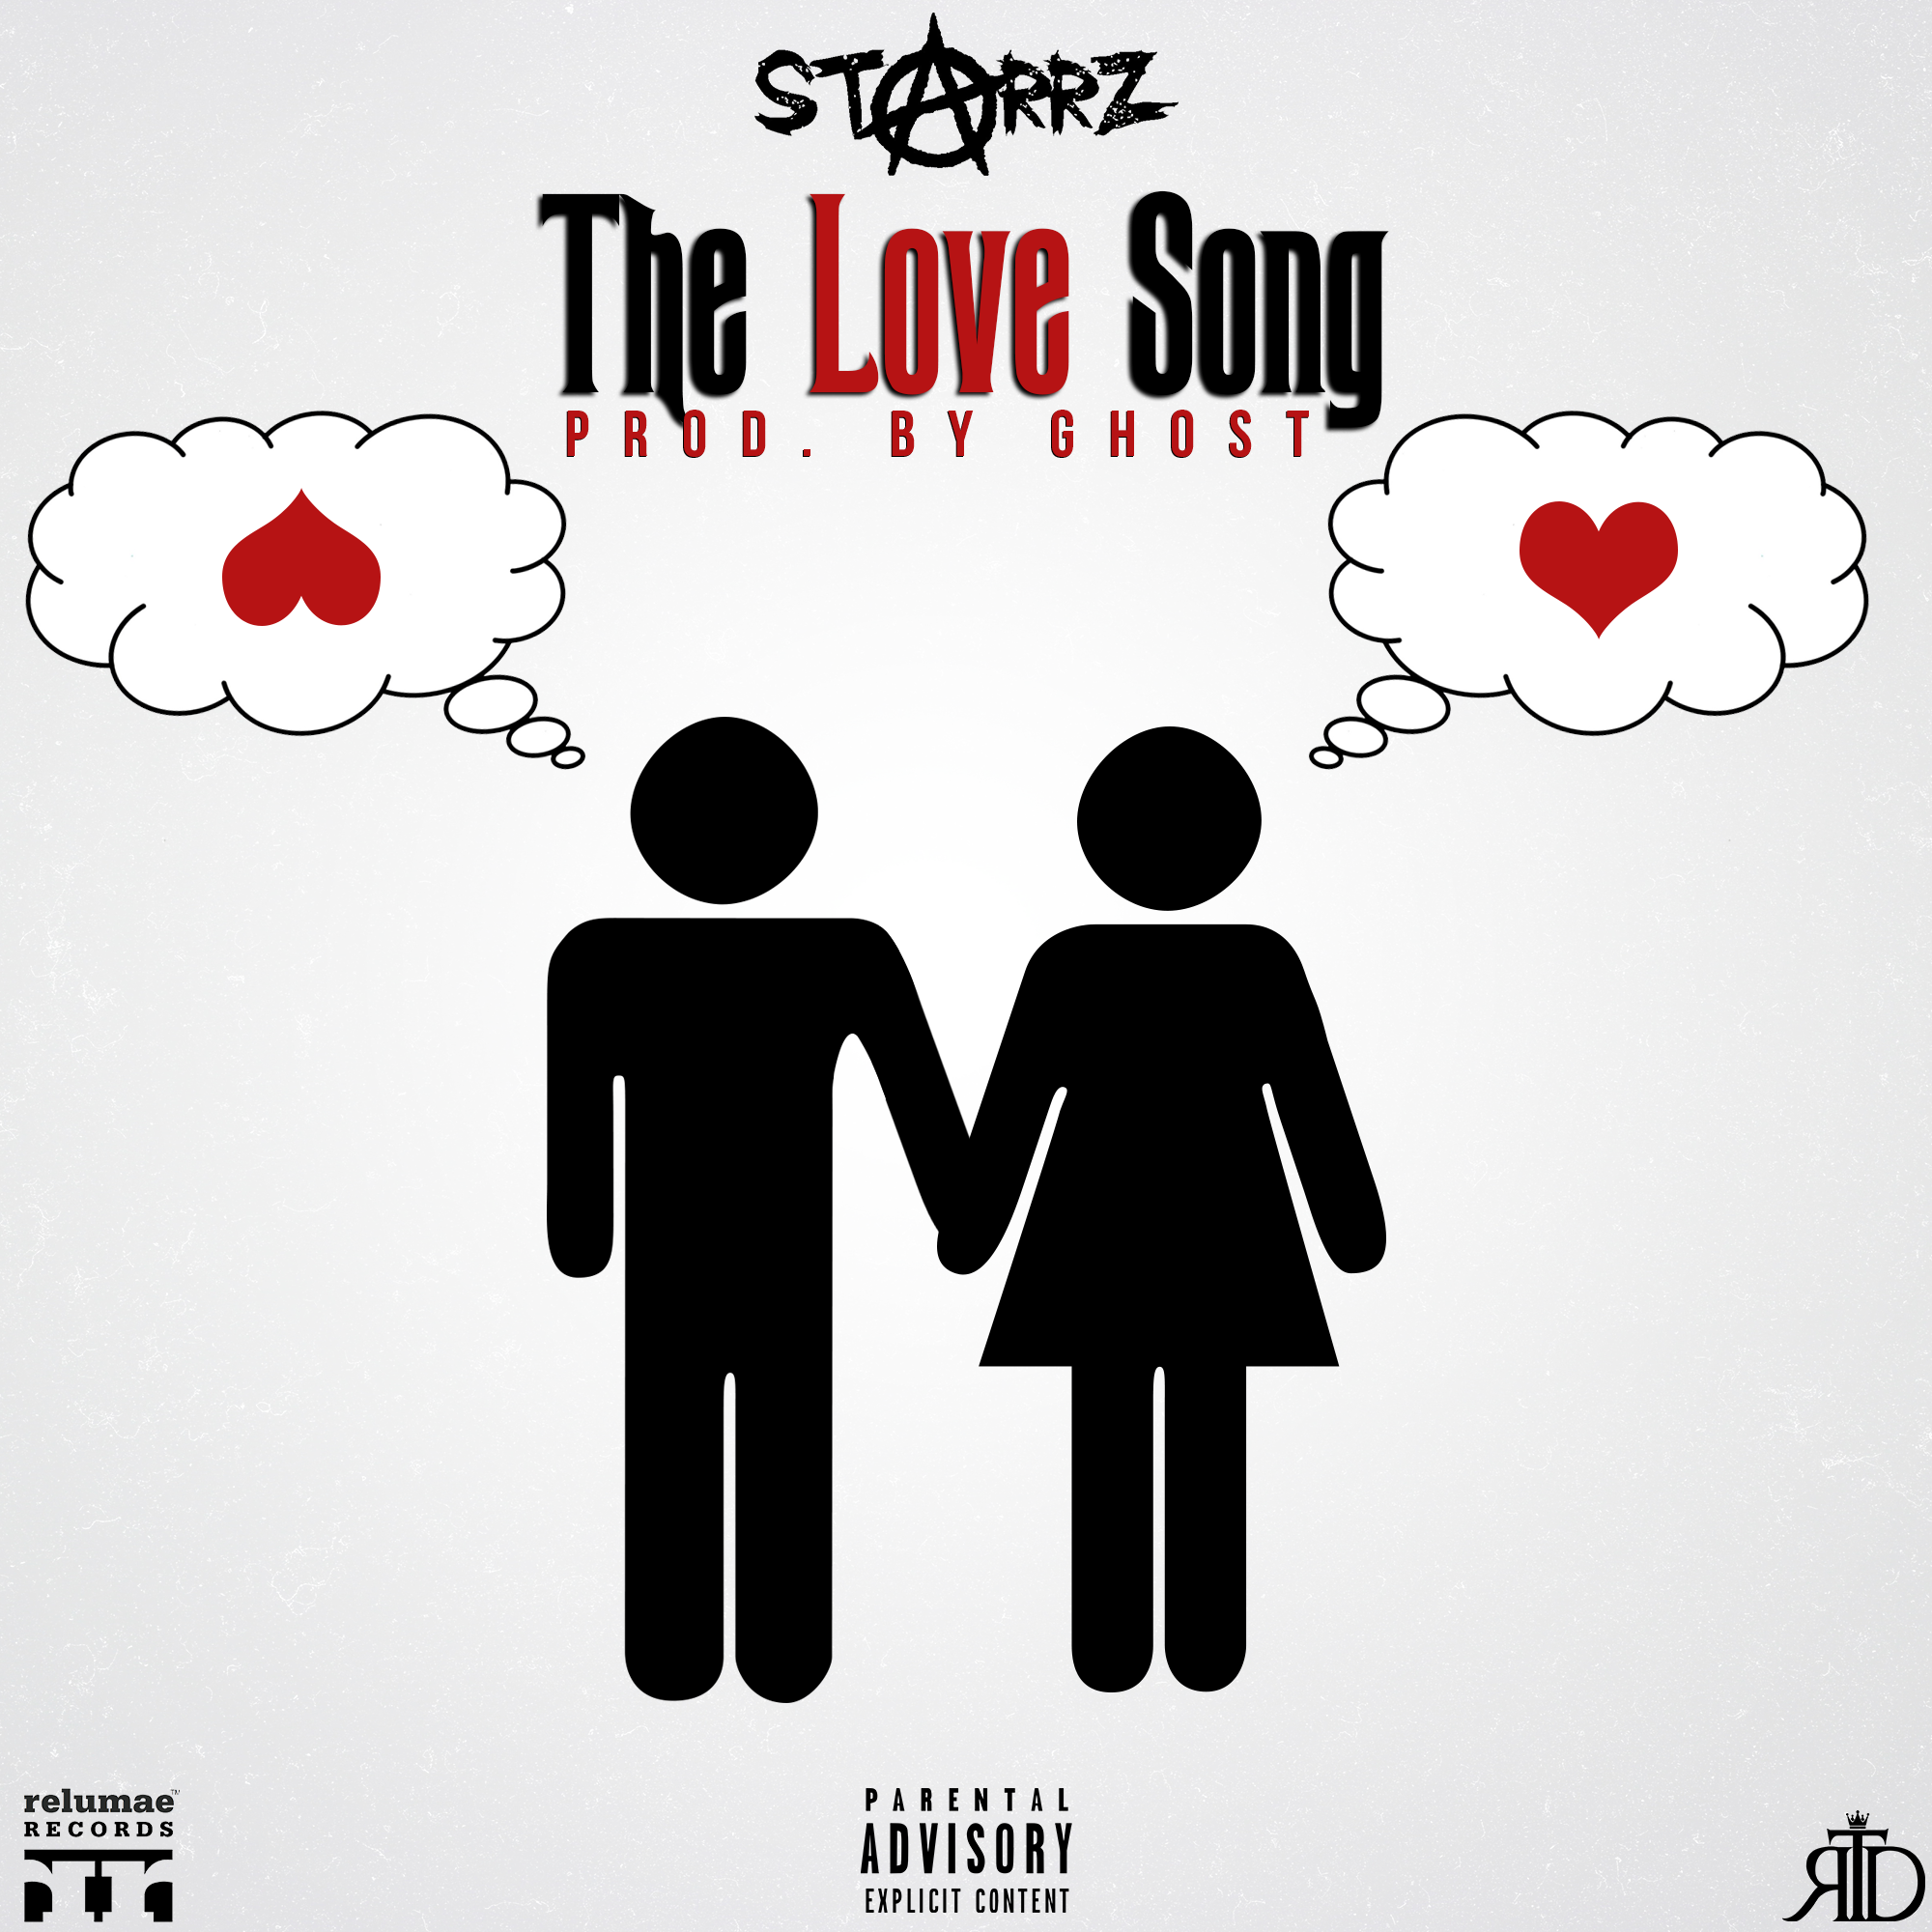 New Music: StarrZ – The Love Song